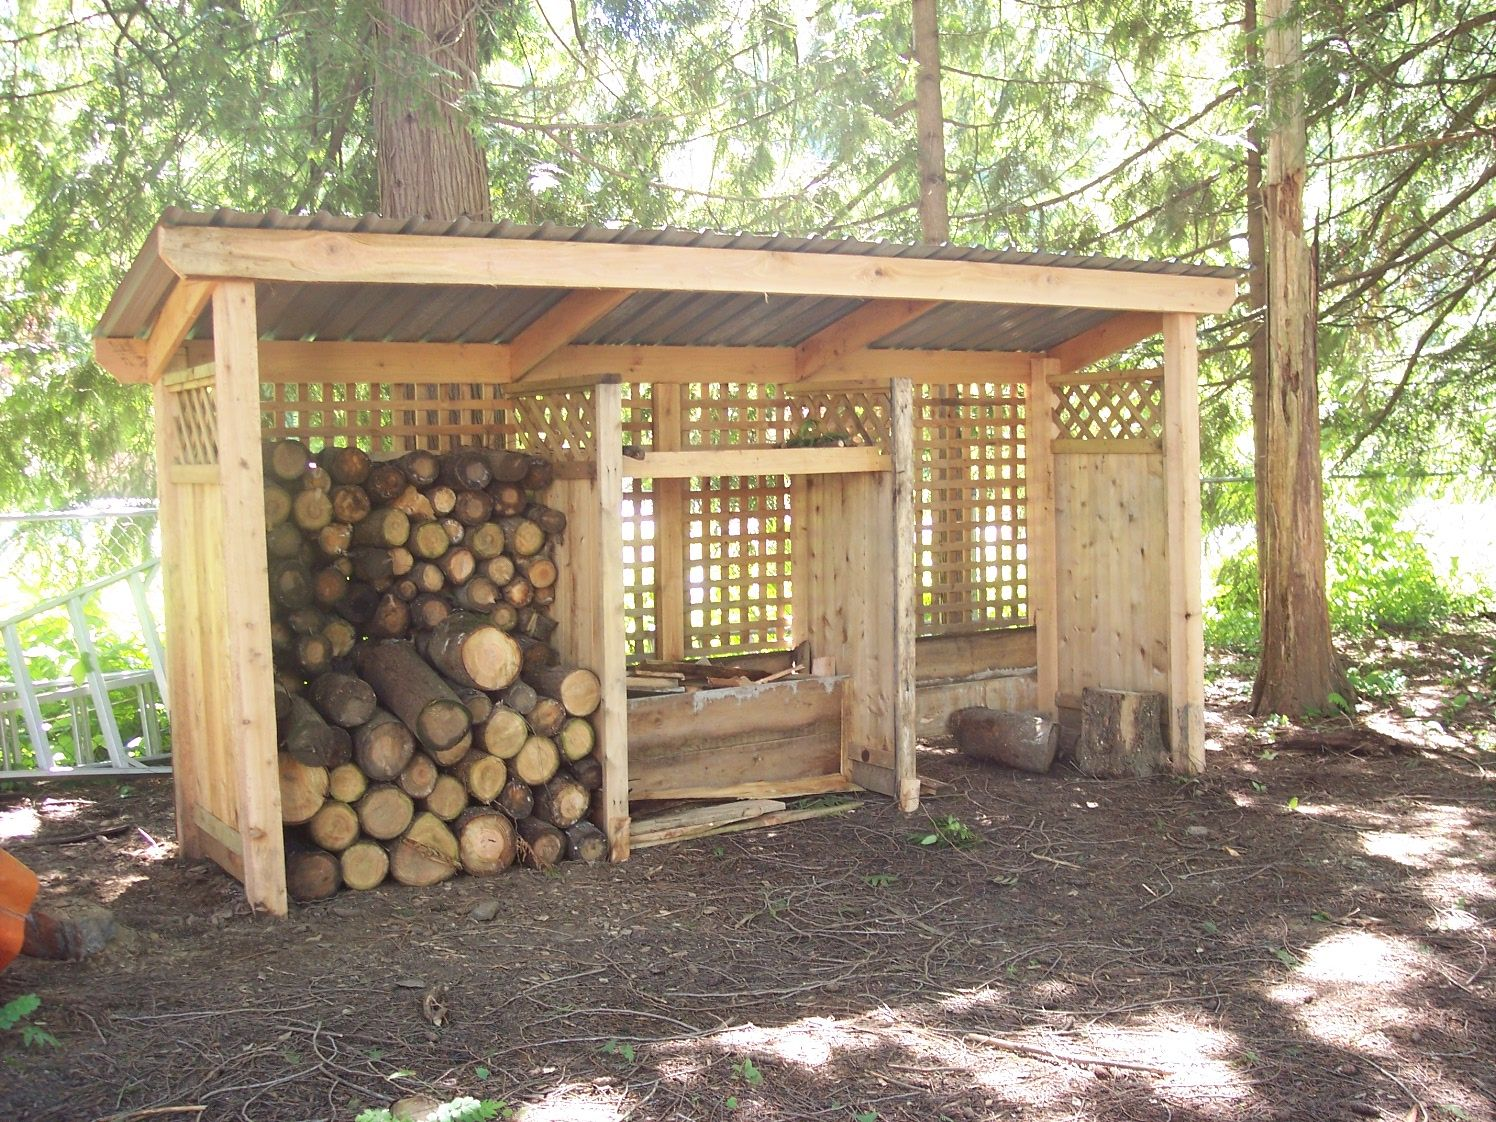 Build A Wood Shed In 6 Hours Building A Wood Shed Wood Storage Sheds Wood Shed Plans